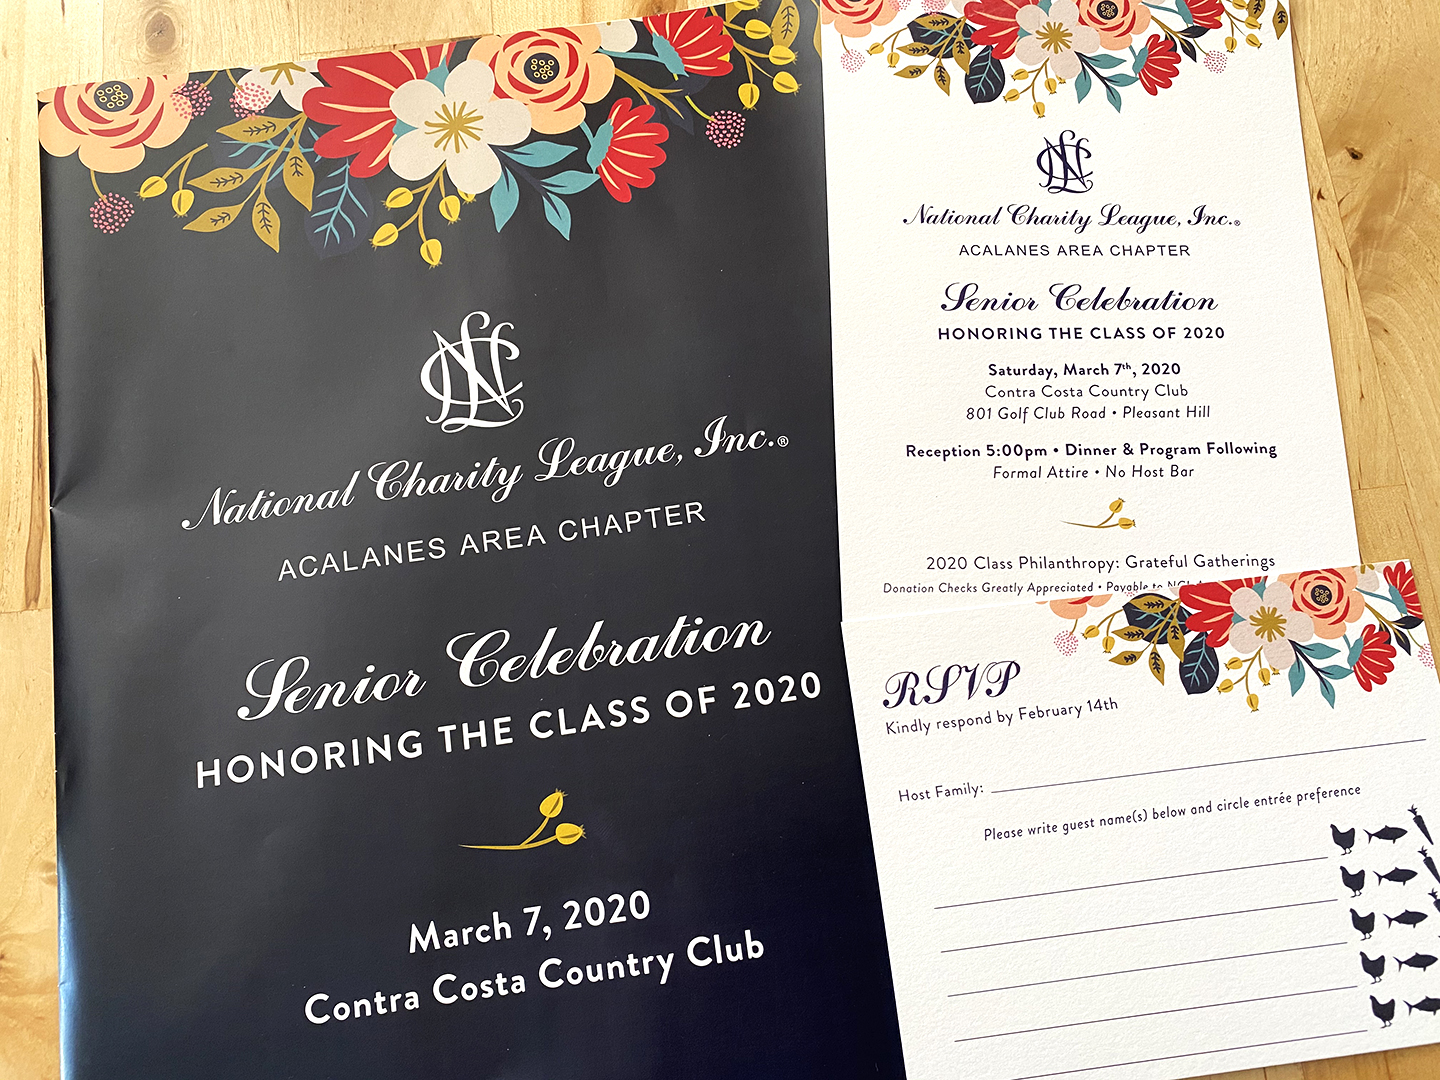 Event Program Cover, Invitation, RSVP